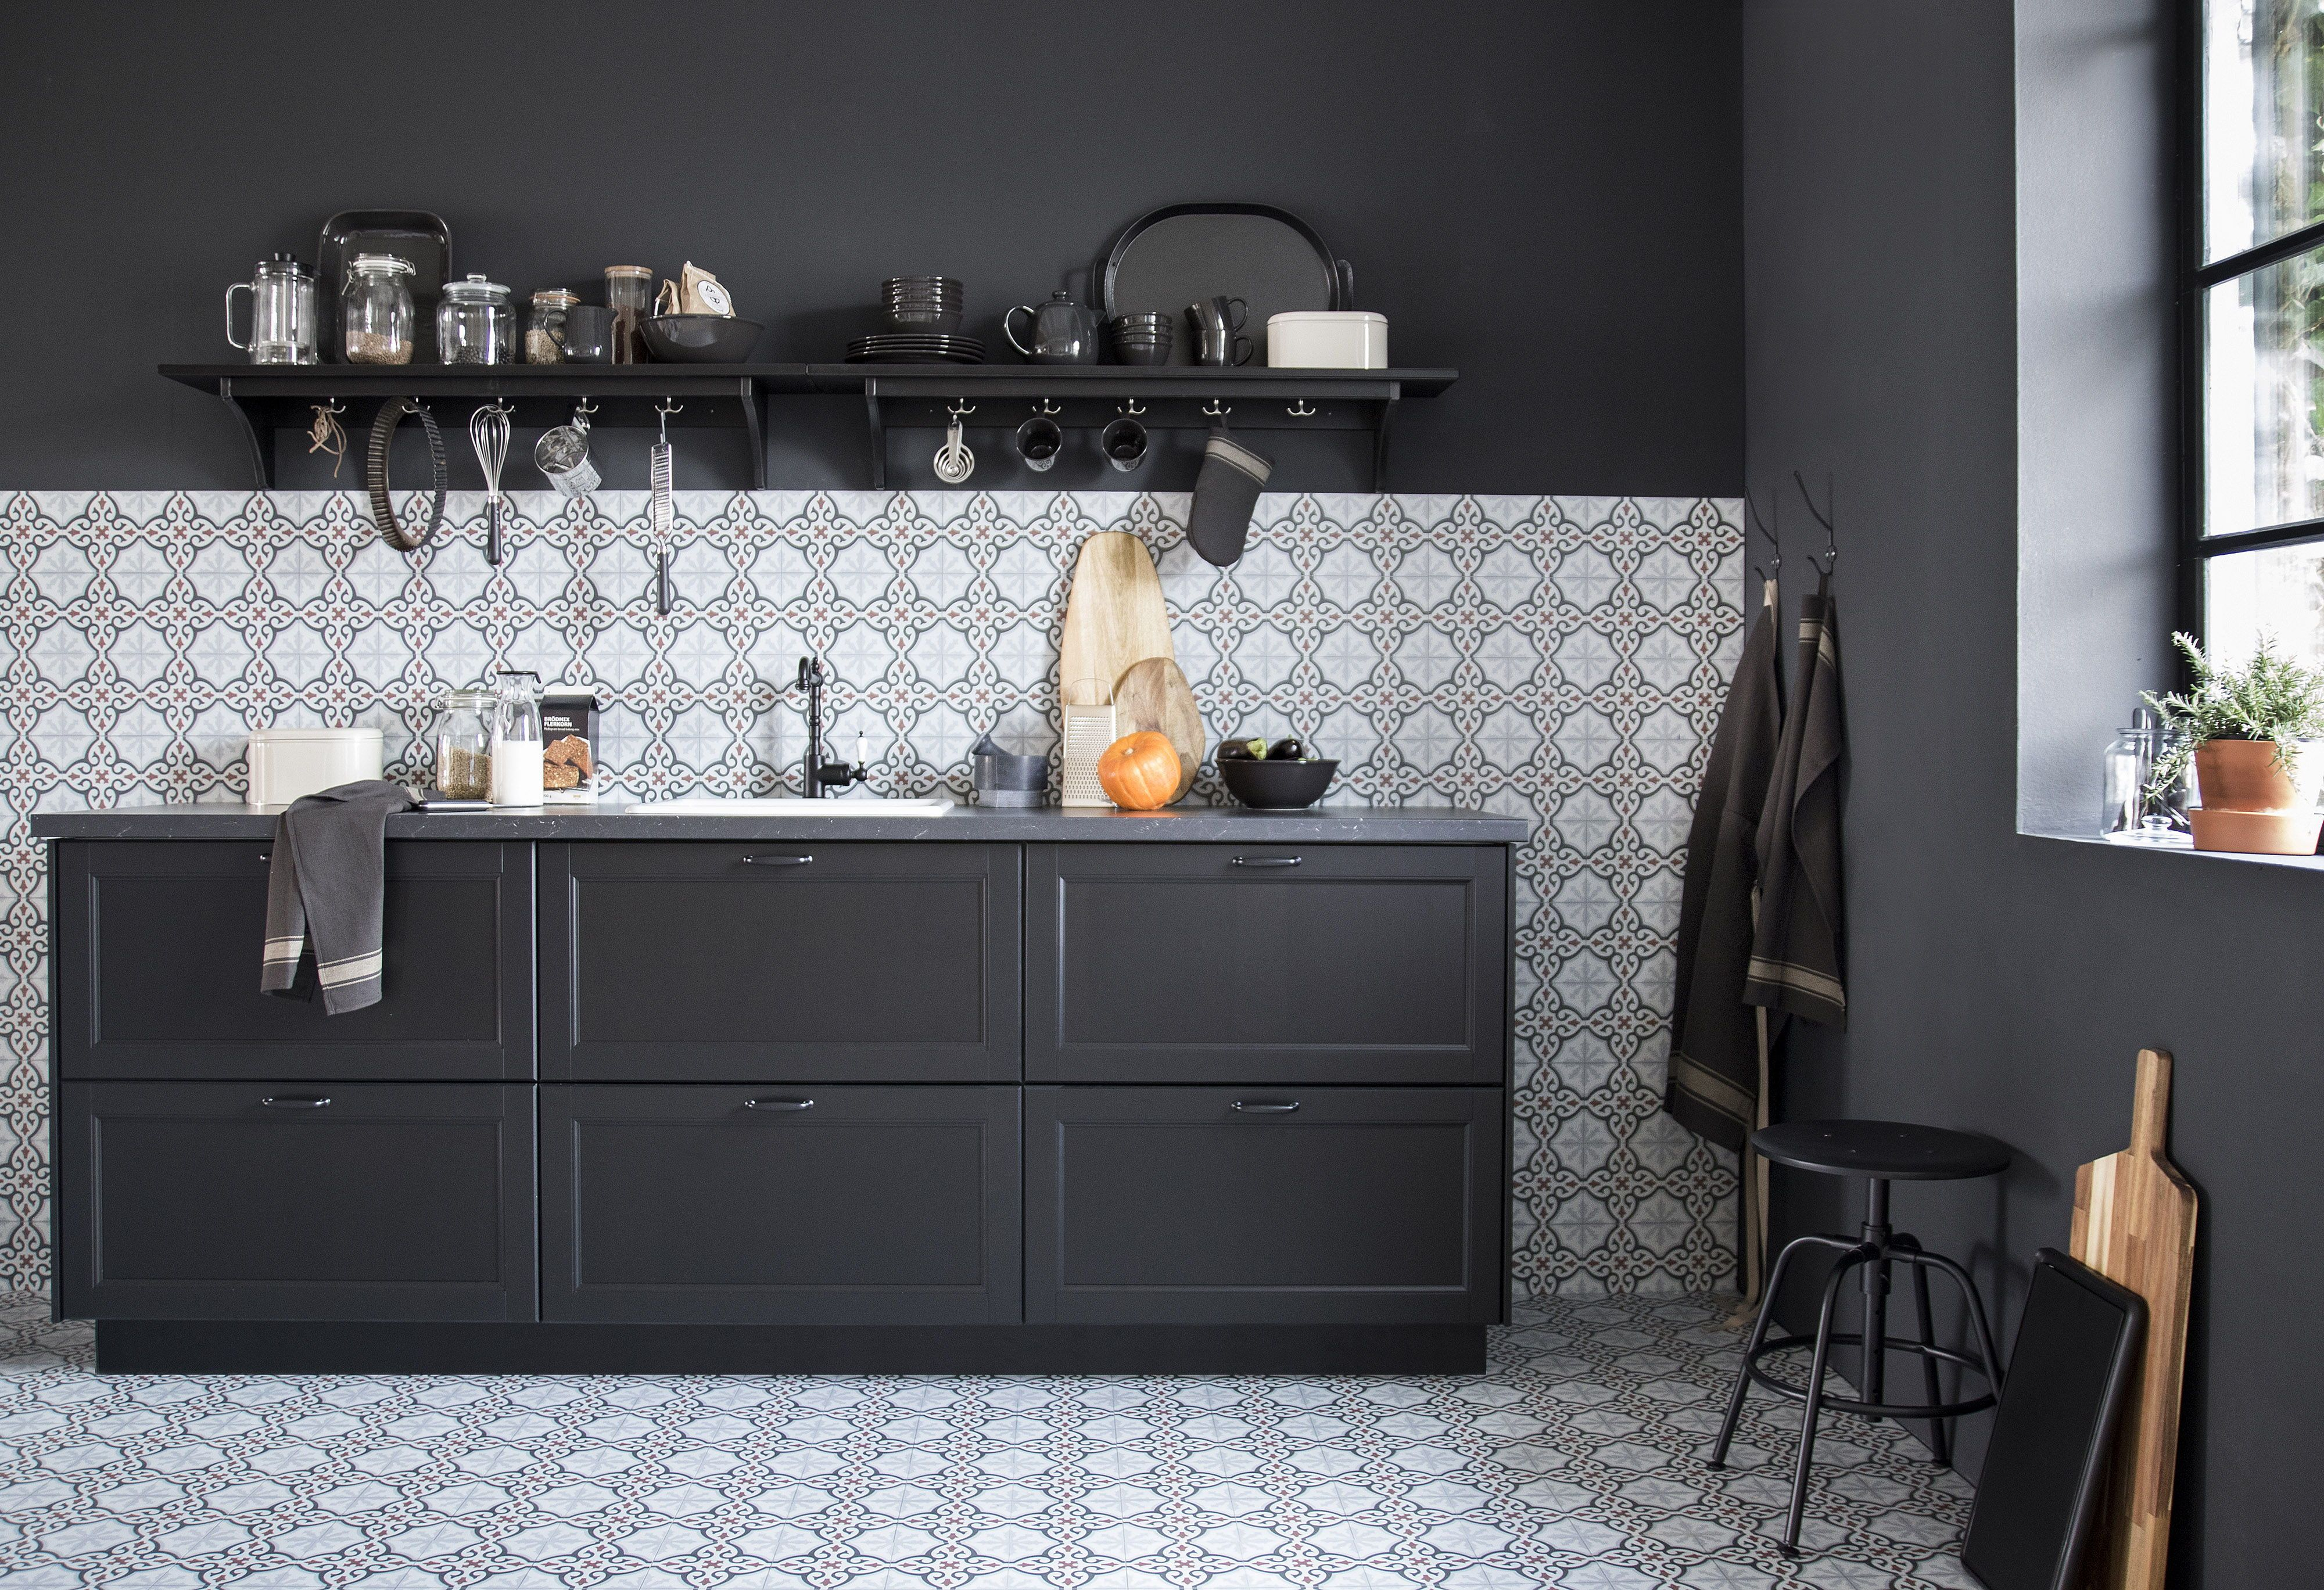 Lerhyttan Keuken Lerhyttan Deur Zwart Gelazuurd In 2019 Kitchen Ikea Kitchen